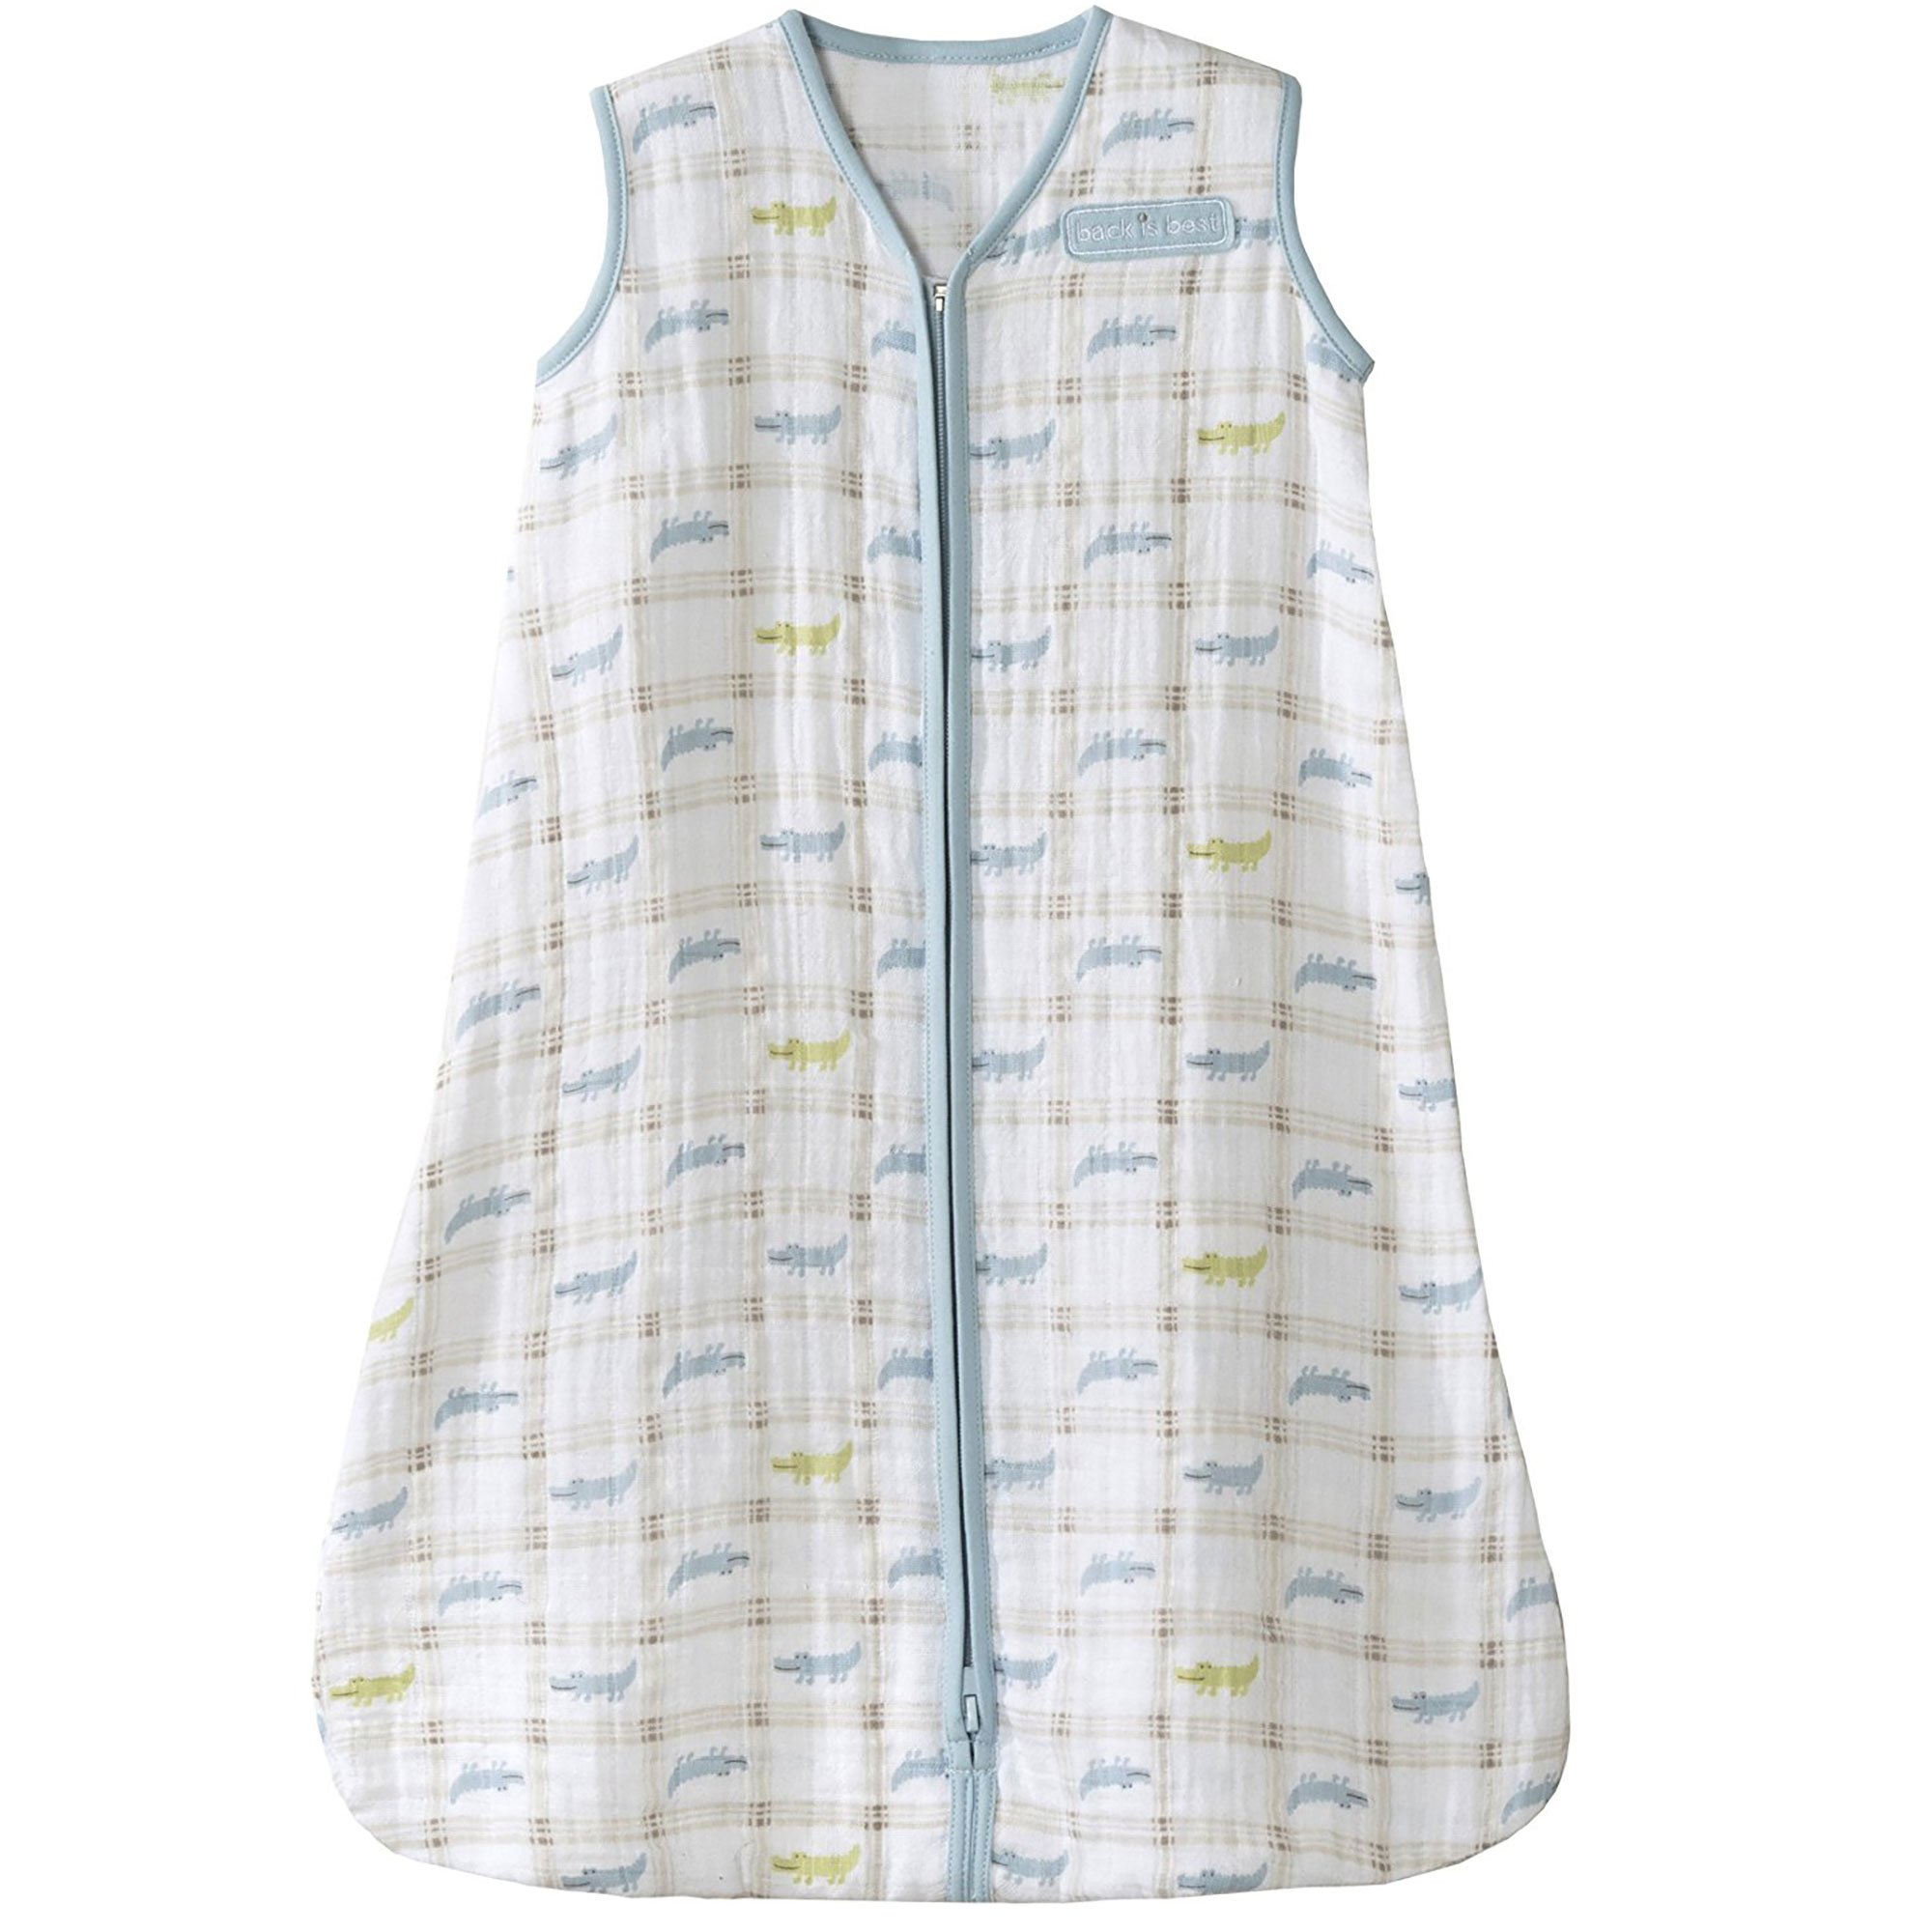 HALO 100% Cotton Muslin Sleepsack Wearable Blanket, Gator Plaid, Medium by Halo